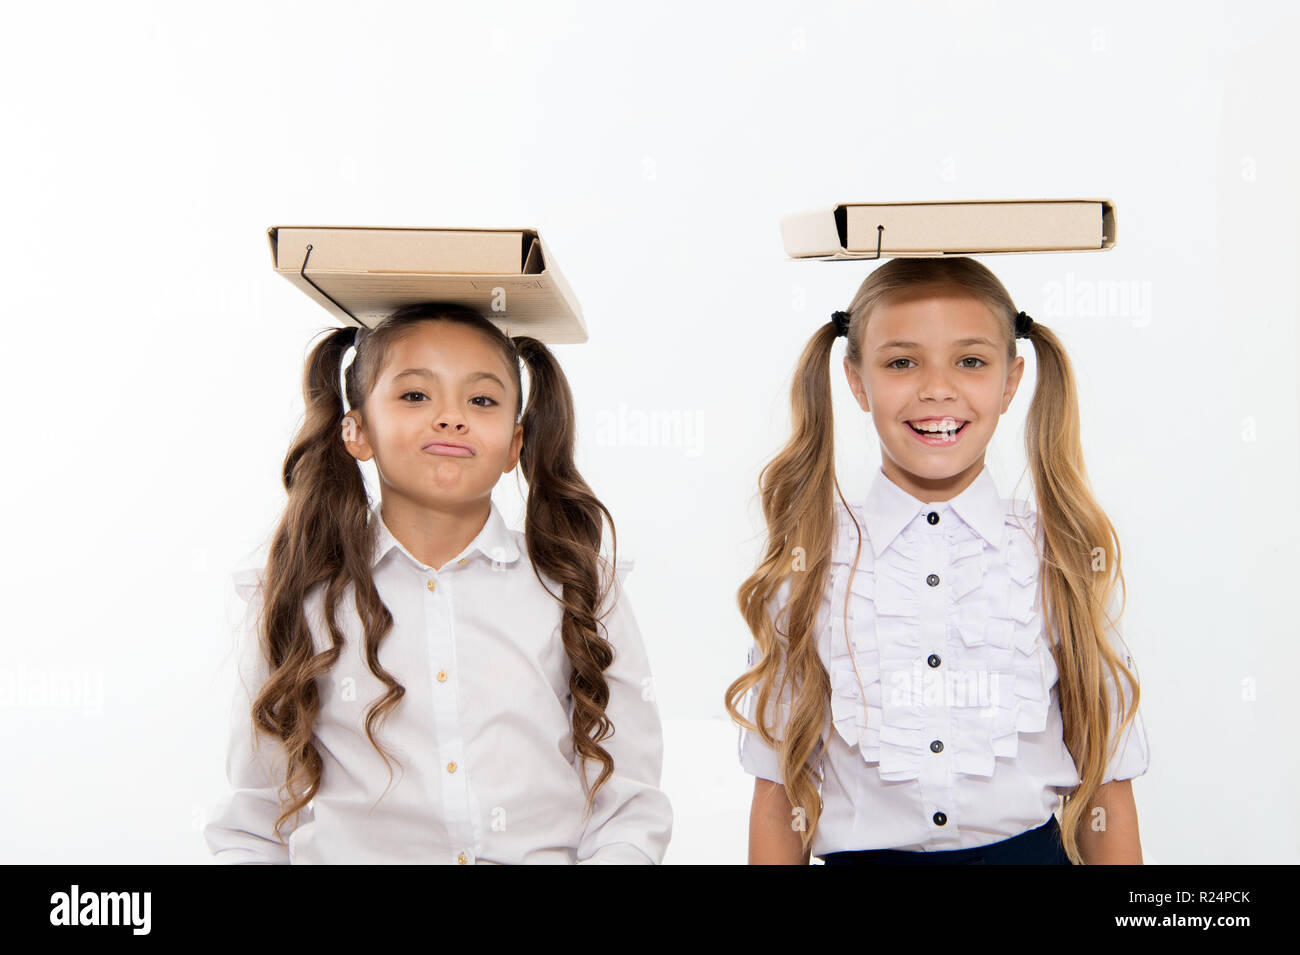 Proper posture. Schoolgirls with cute pony tails hairstyle carry folders on heads. Perfect schoolgirls with tidy fancy hair and proper posture carry folders on heads. Balance and burden of knowledge. - Stock Image